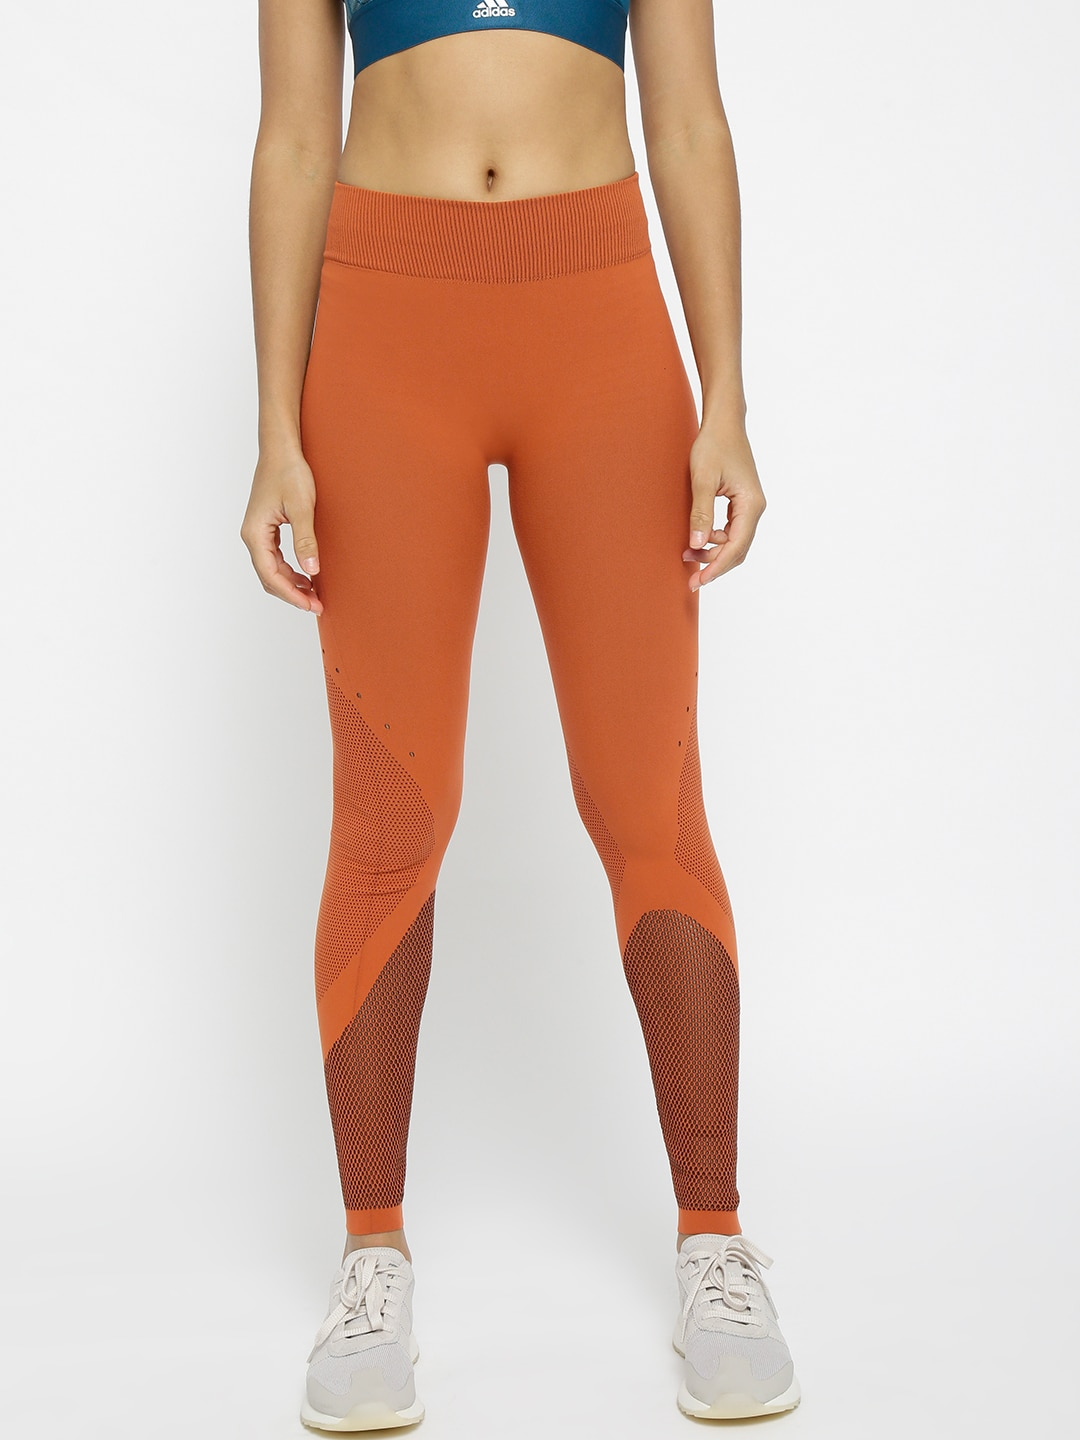 5a40e886472d Adidas Tights - Buy Adidas Tights online in India